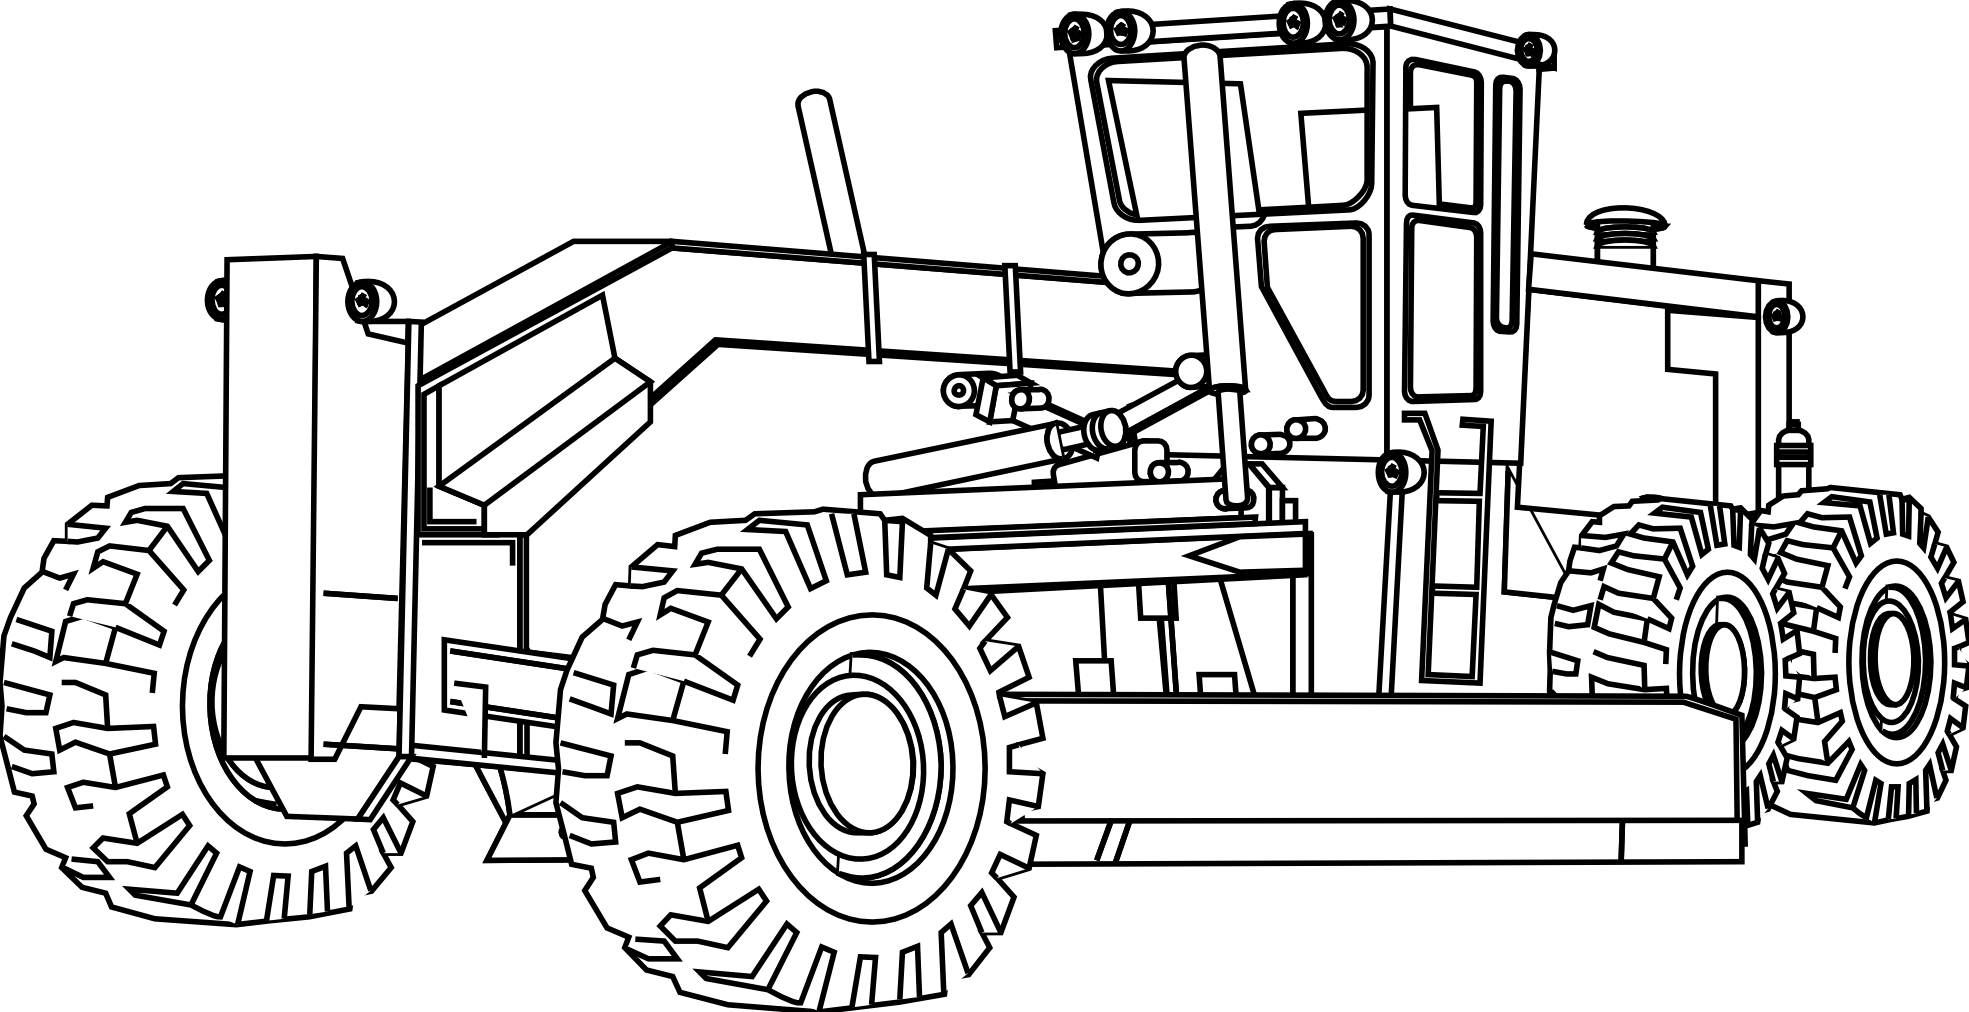 excavator svg transparent. Backhoe clipart engineering equipment graphic black and white library